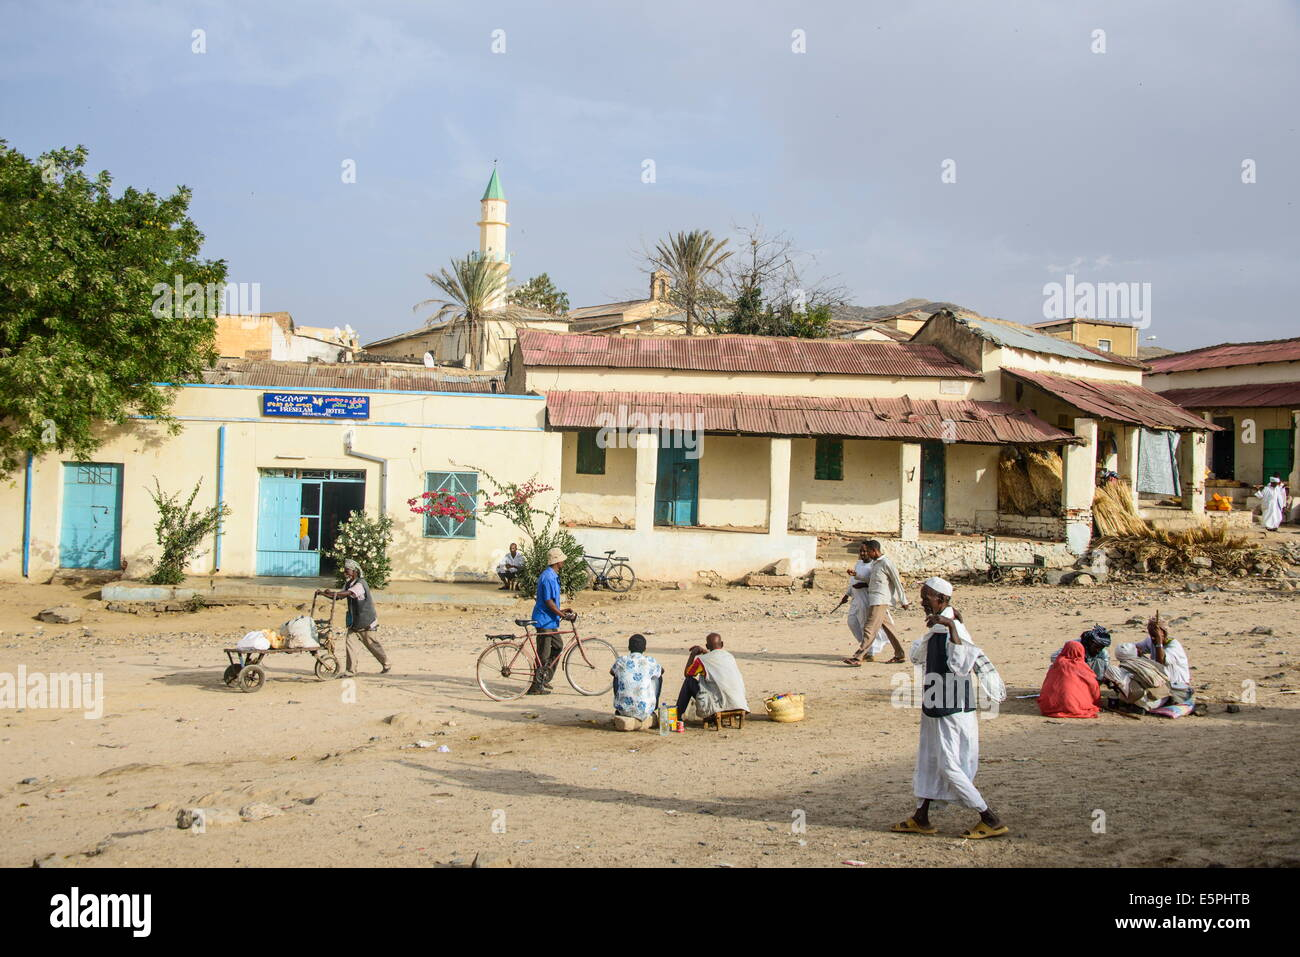 Street scene in the town of Keren, Eritrea, Africa - Stock Image